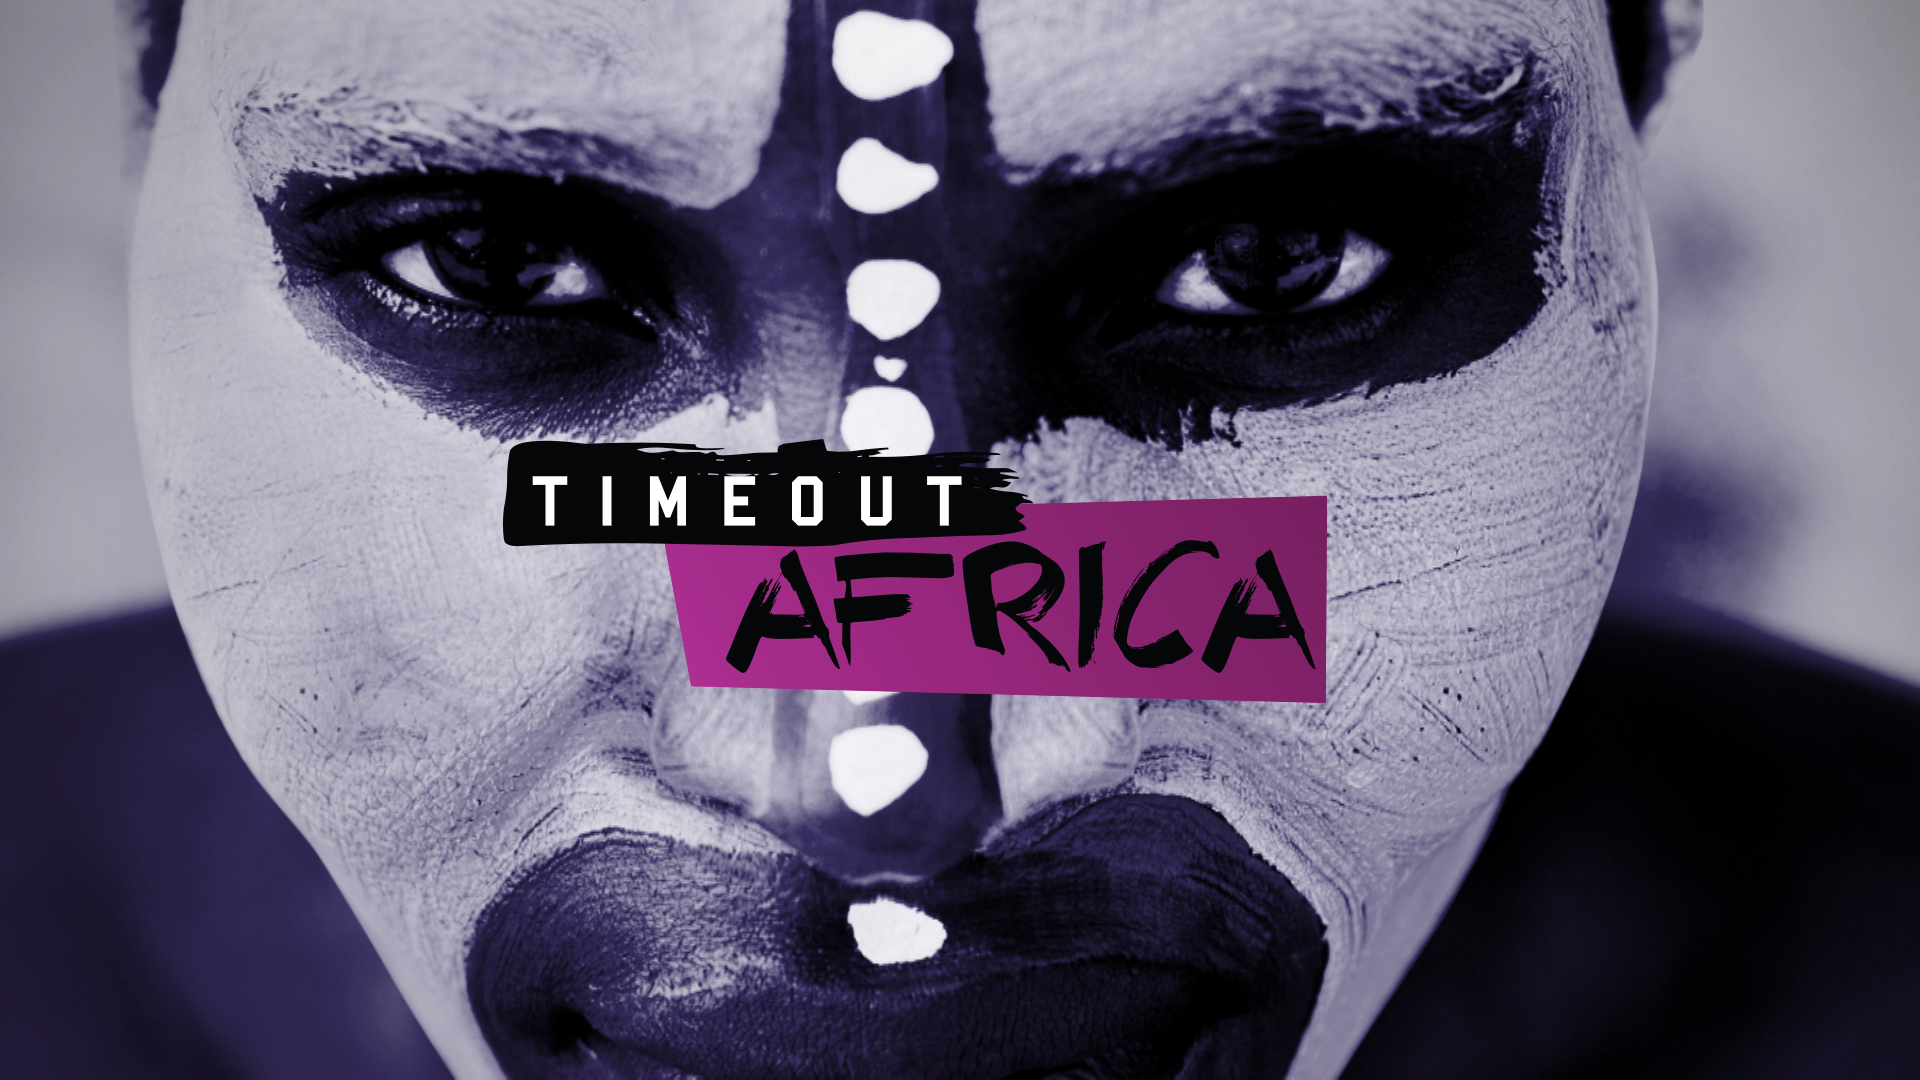 Selects the best weekly cultural events ​on the African continent Time Out Africa showcases a selection ​of the influential African artists in the world.​